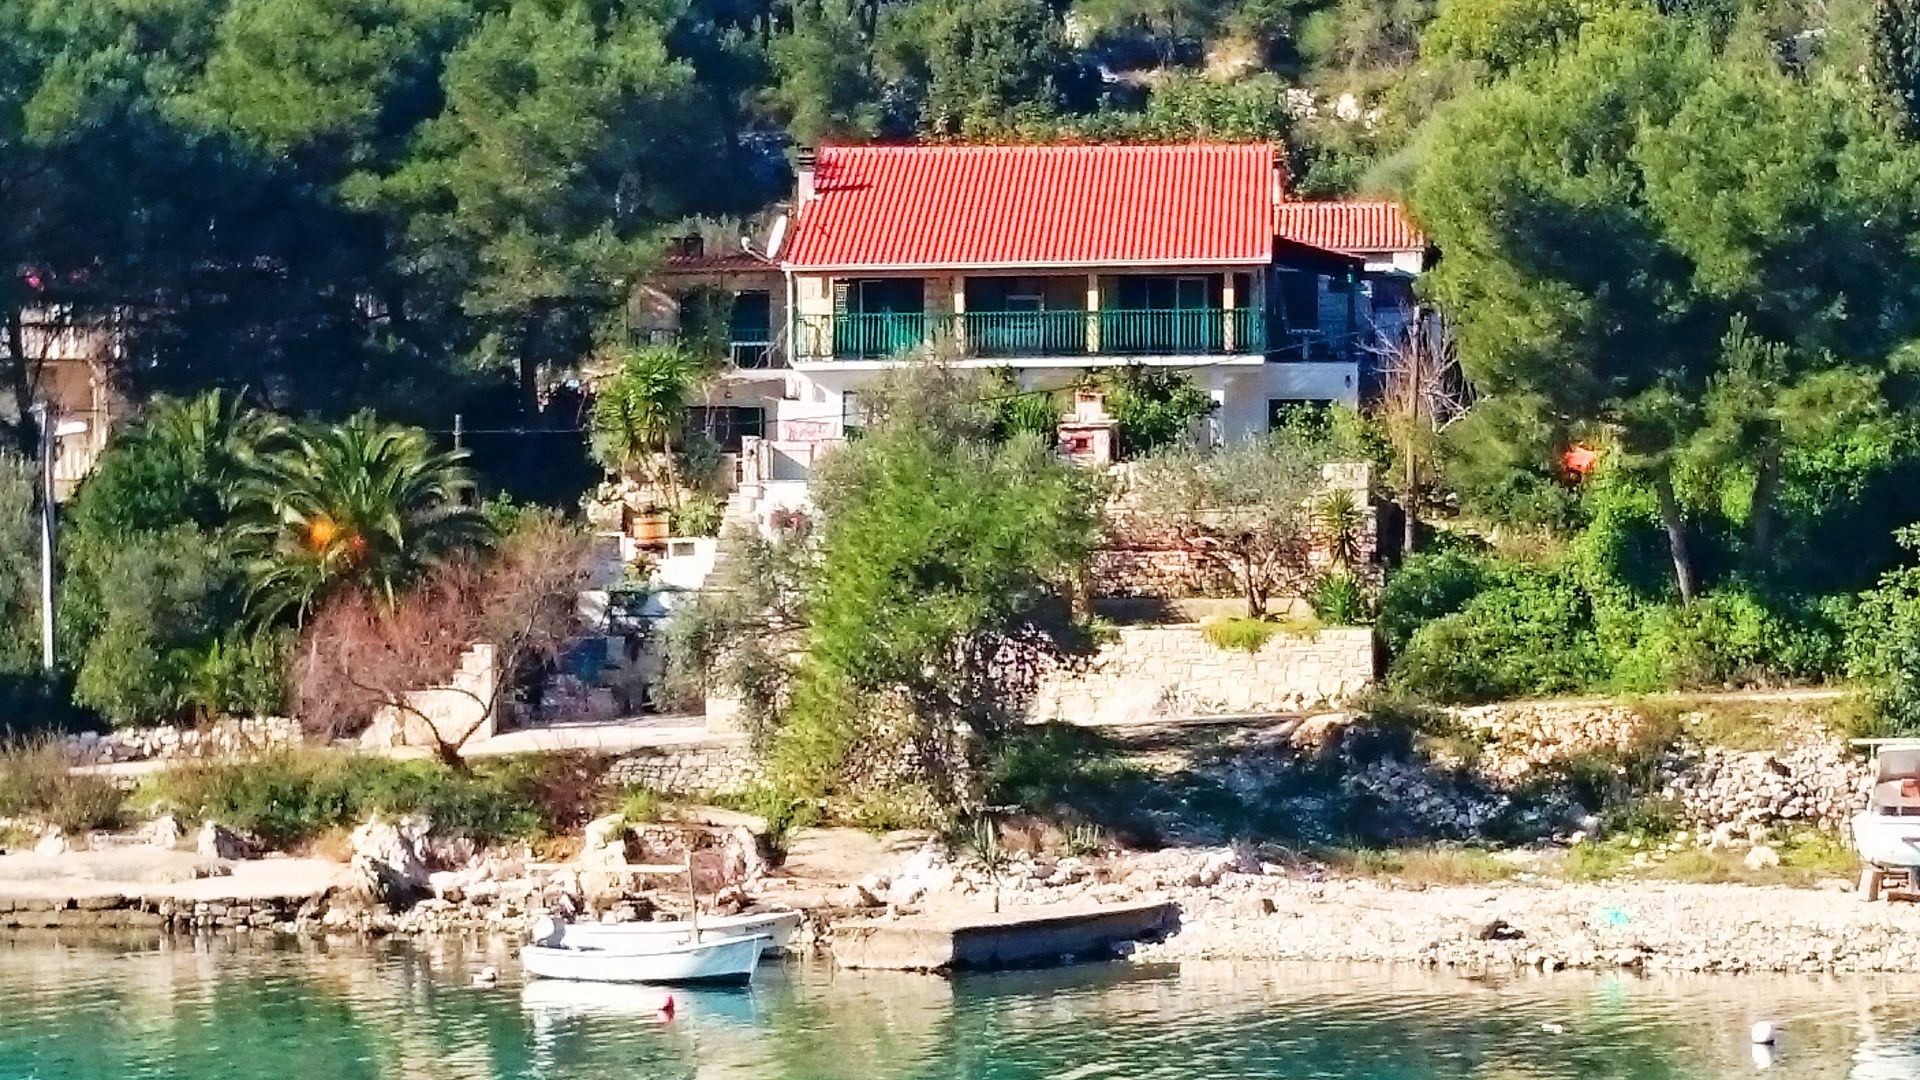 044-04-ROG - Cove Banje (Rogac) - Accommodation in coves Croatia